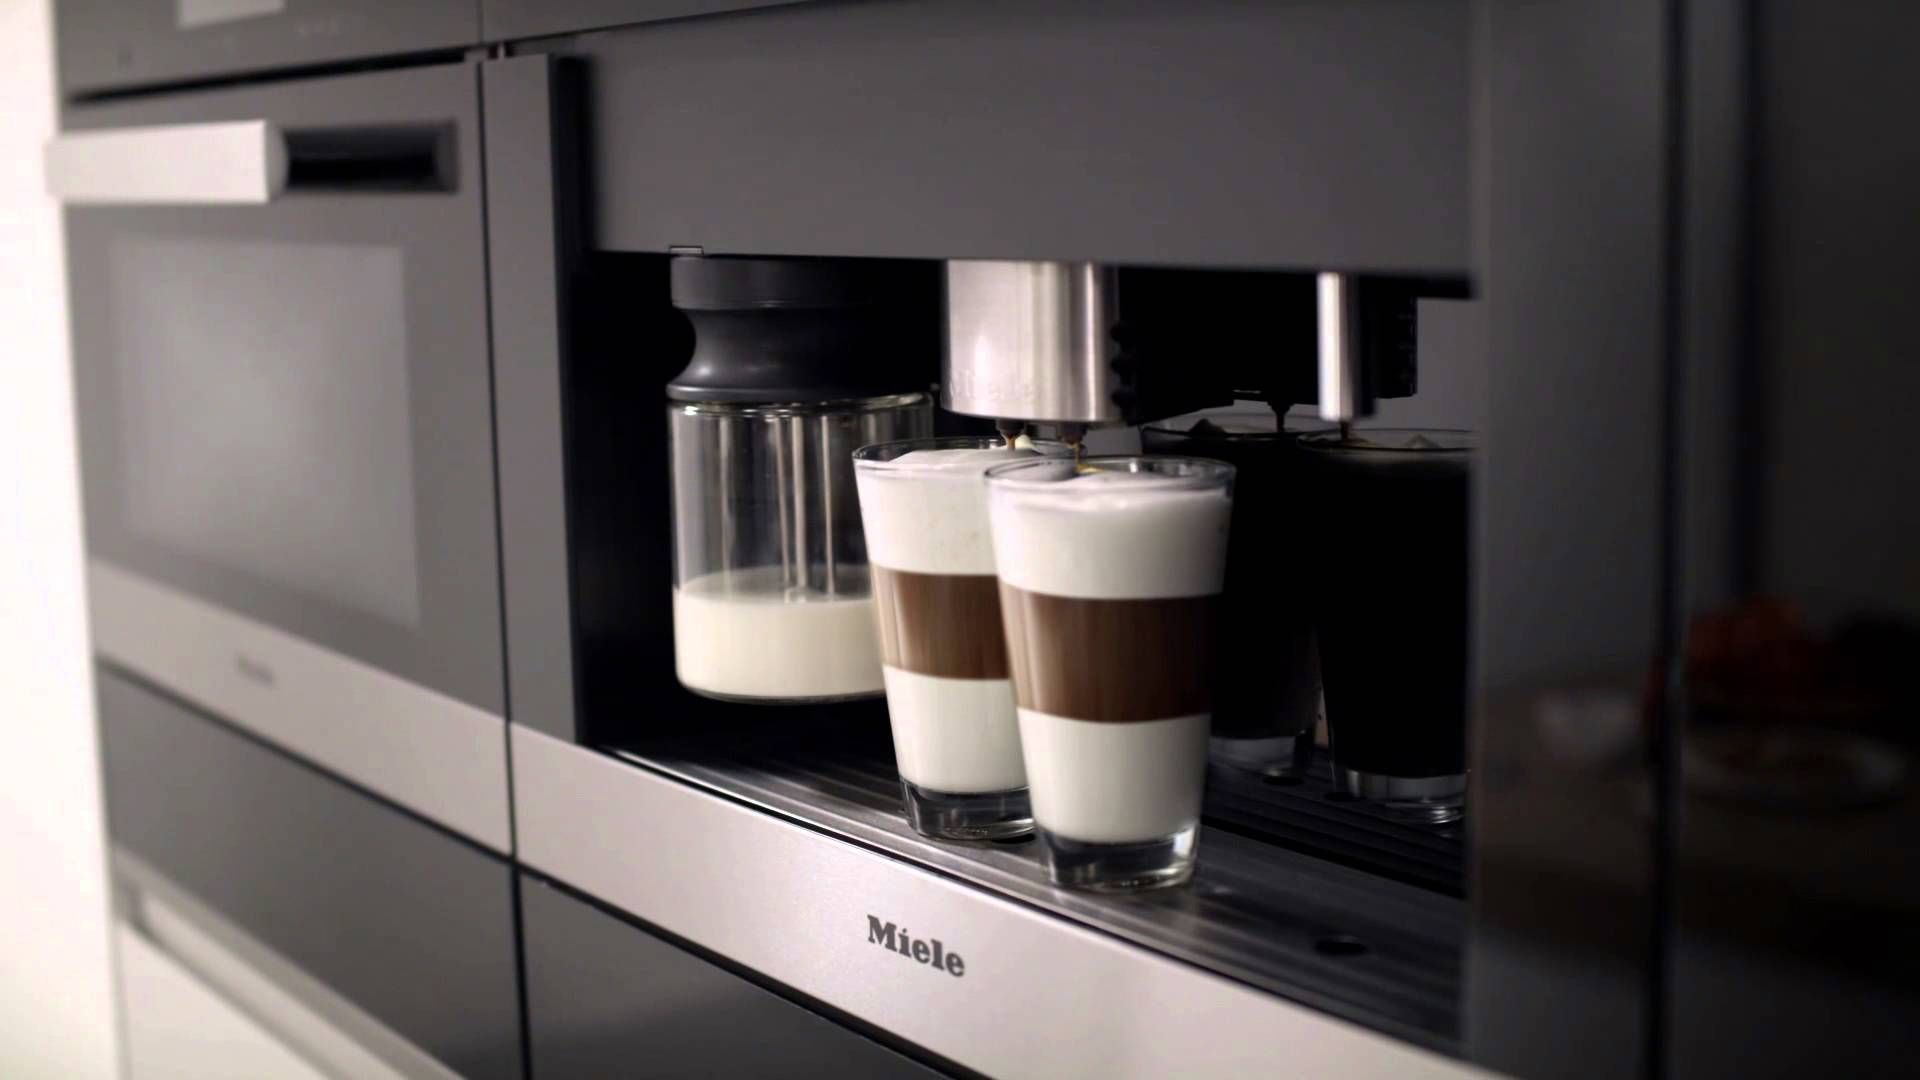 built kitchen things of maker machine plumbed in miele picture coffee plumbing